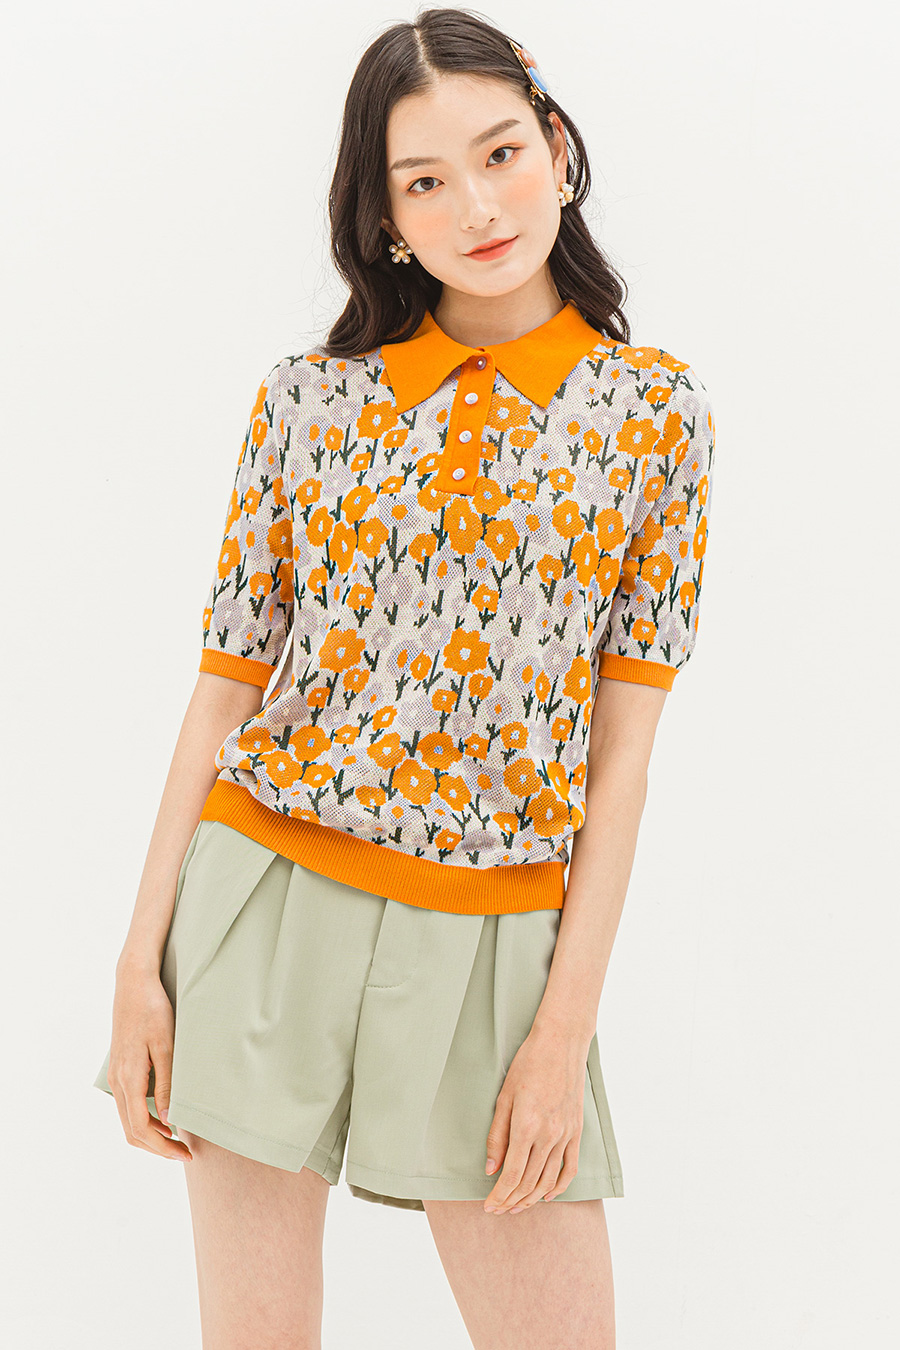 COLETTE TOP - PANSY